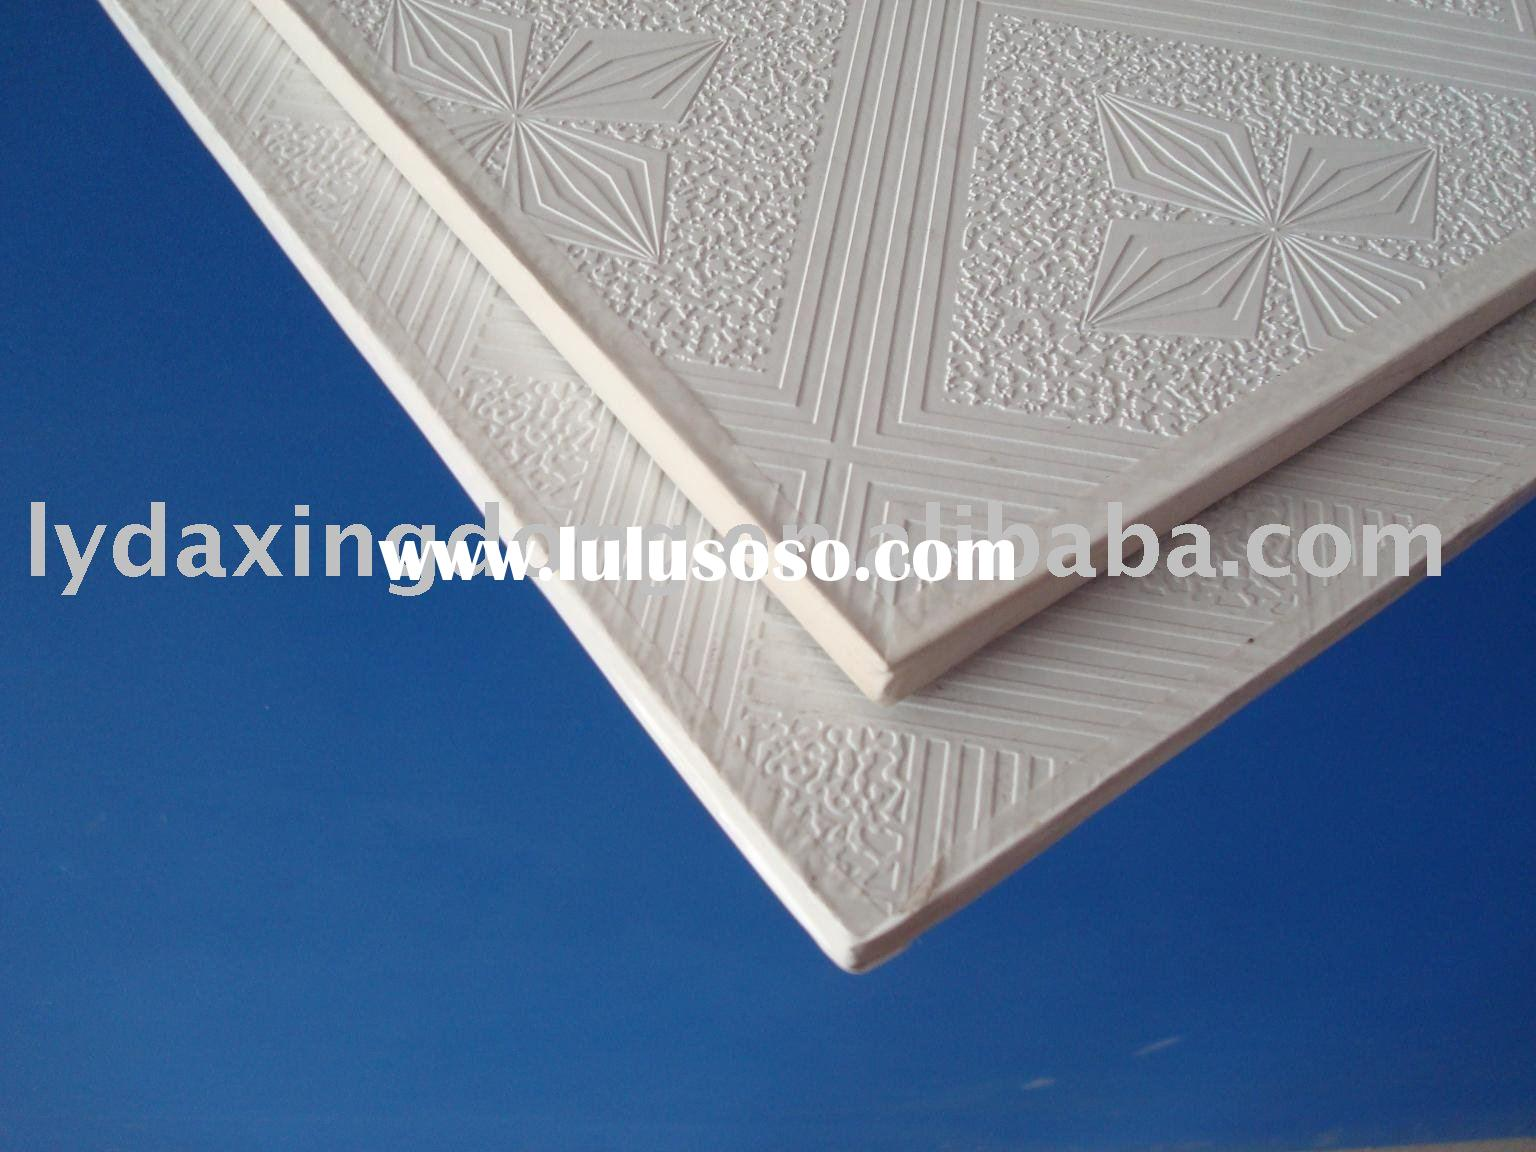 Composite Ceiling Tiles : Interior decorative pvc ceiling waterproof wall boards for